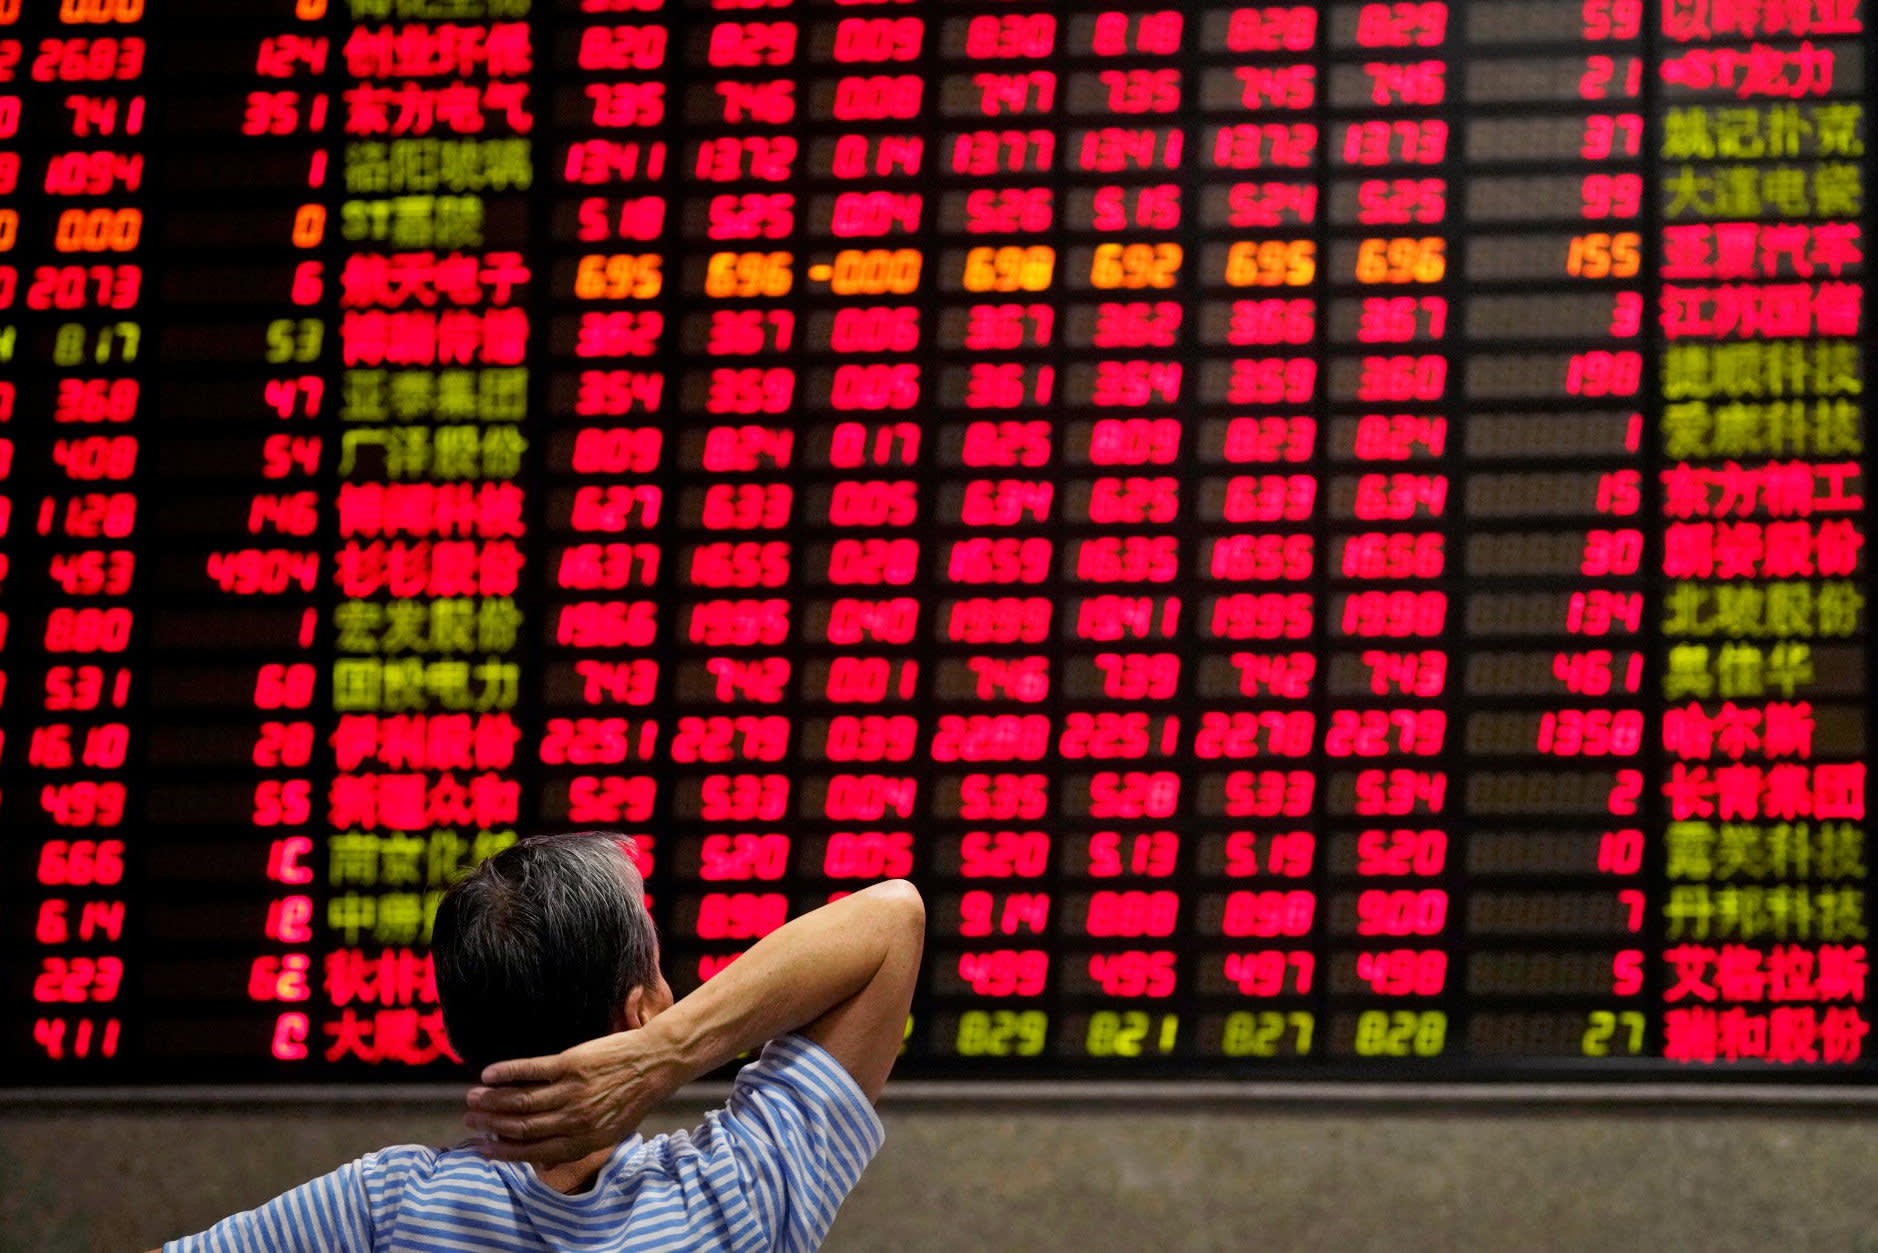 Chinese Stocks Take Massive Hit as Trade War Intensifies